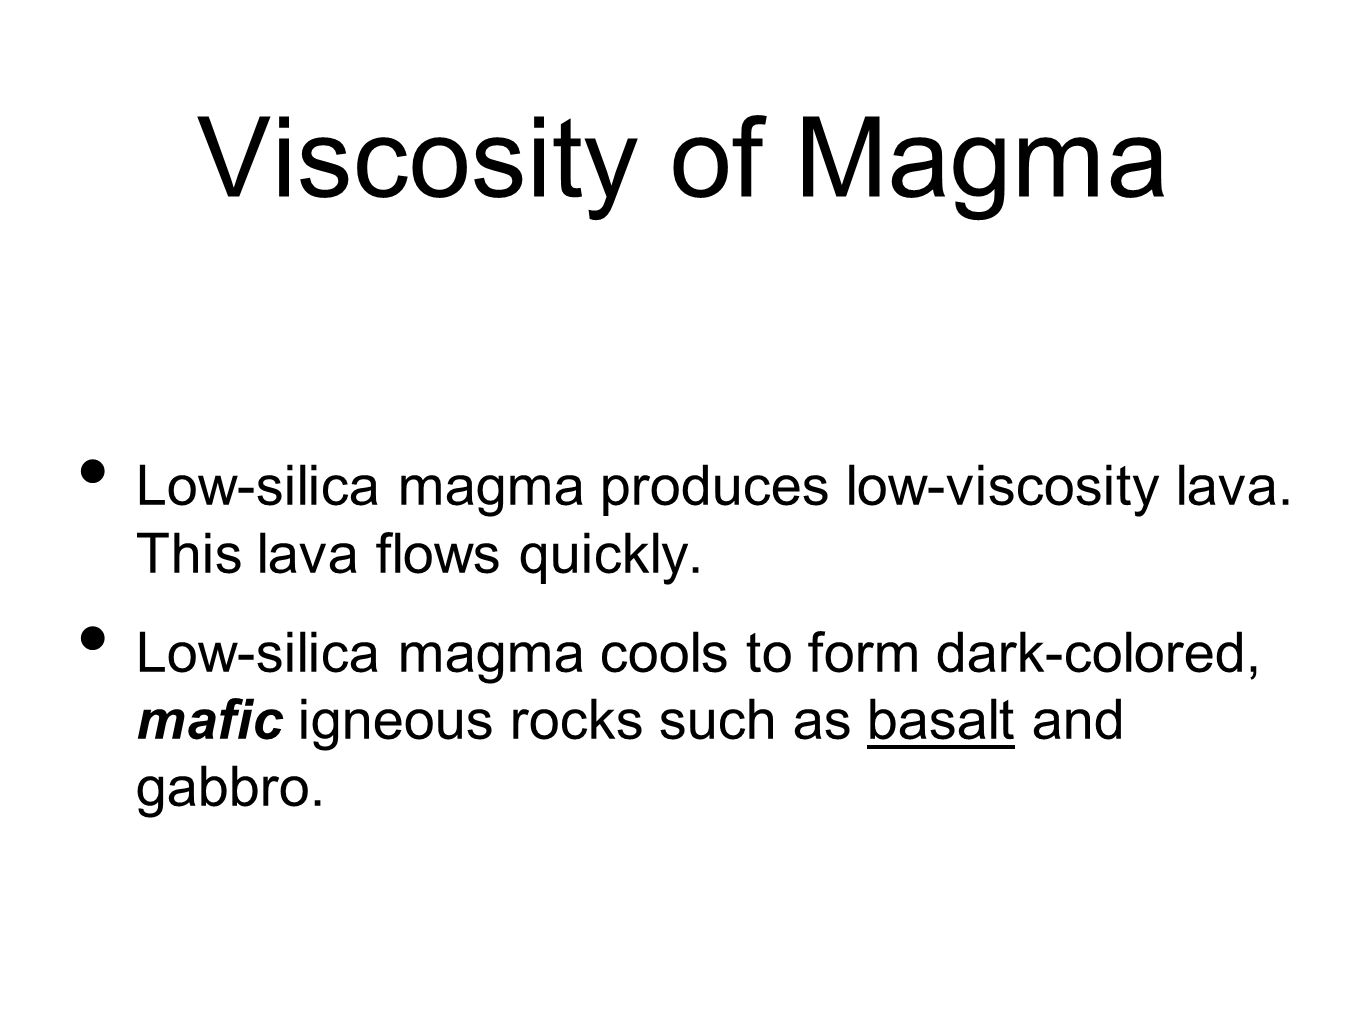 Viscosity of MagmaLow-silica magma produces low-viscosity lava. This lava flows quickly.